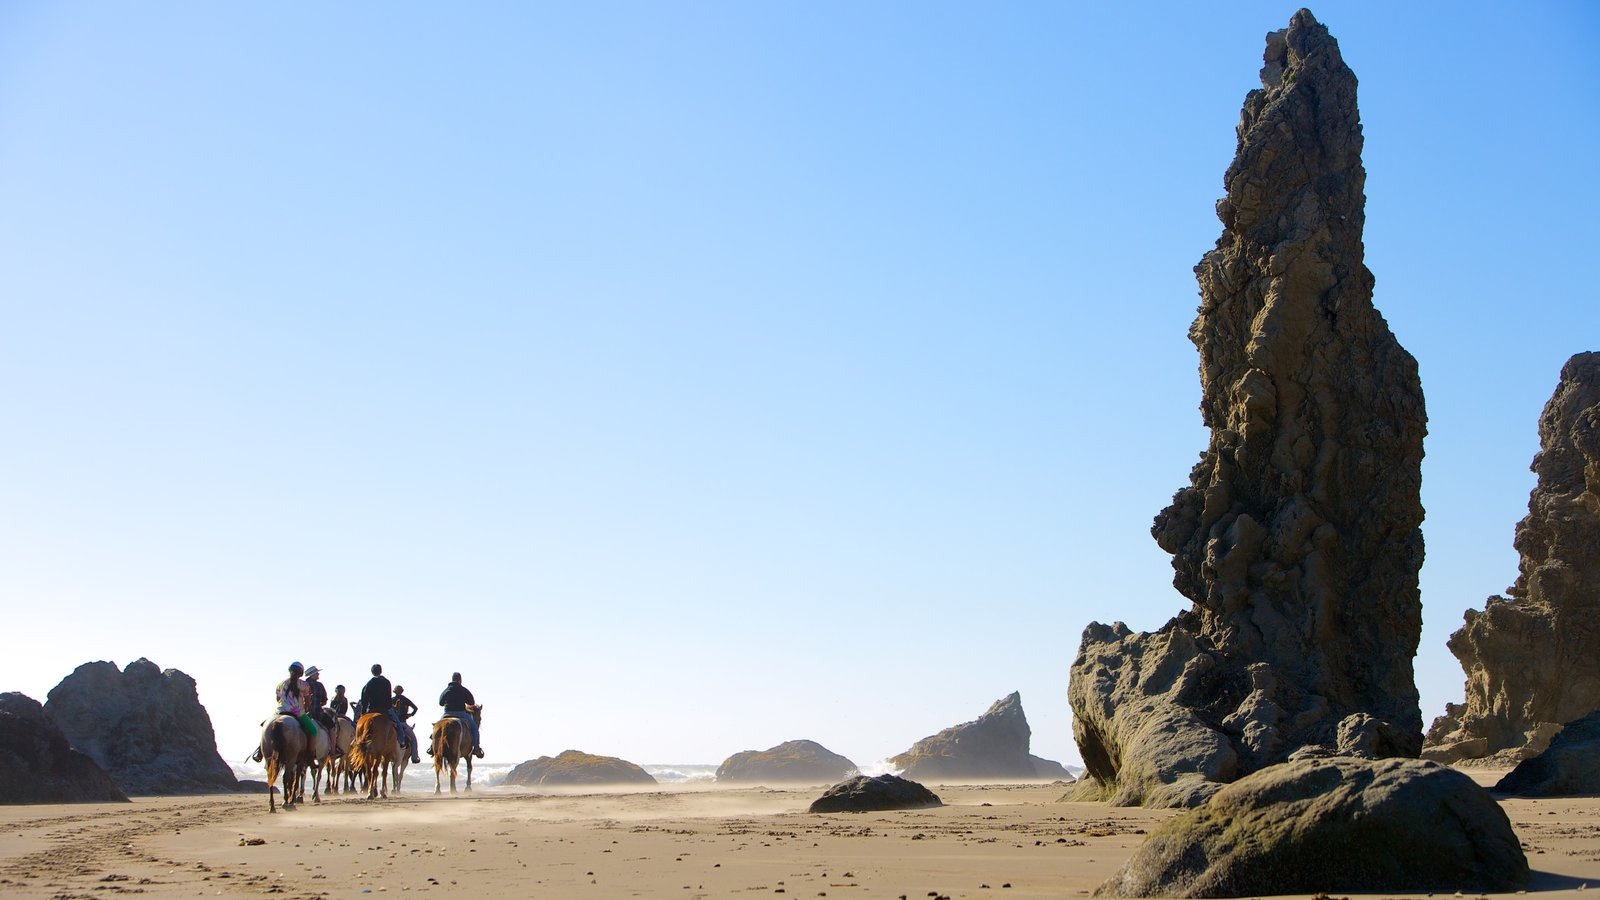 Bandon Beach which includes land animals and horse riding